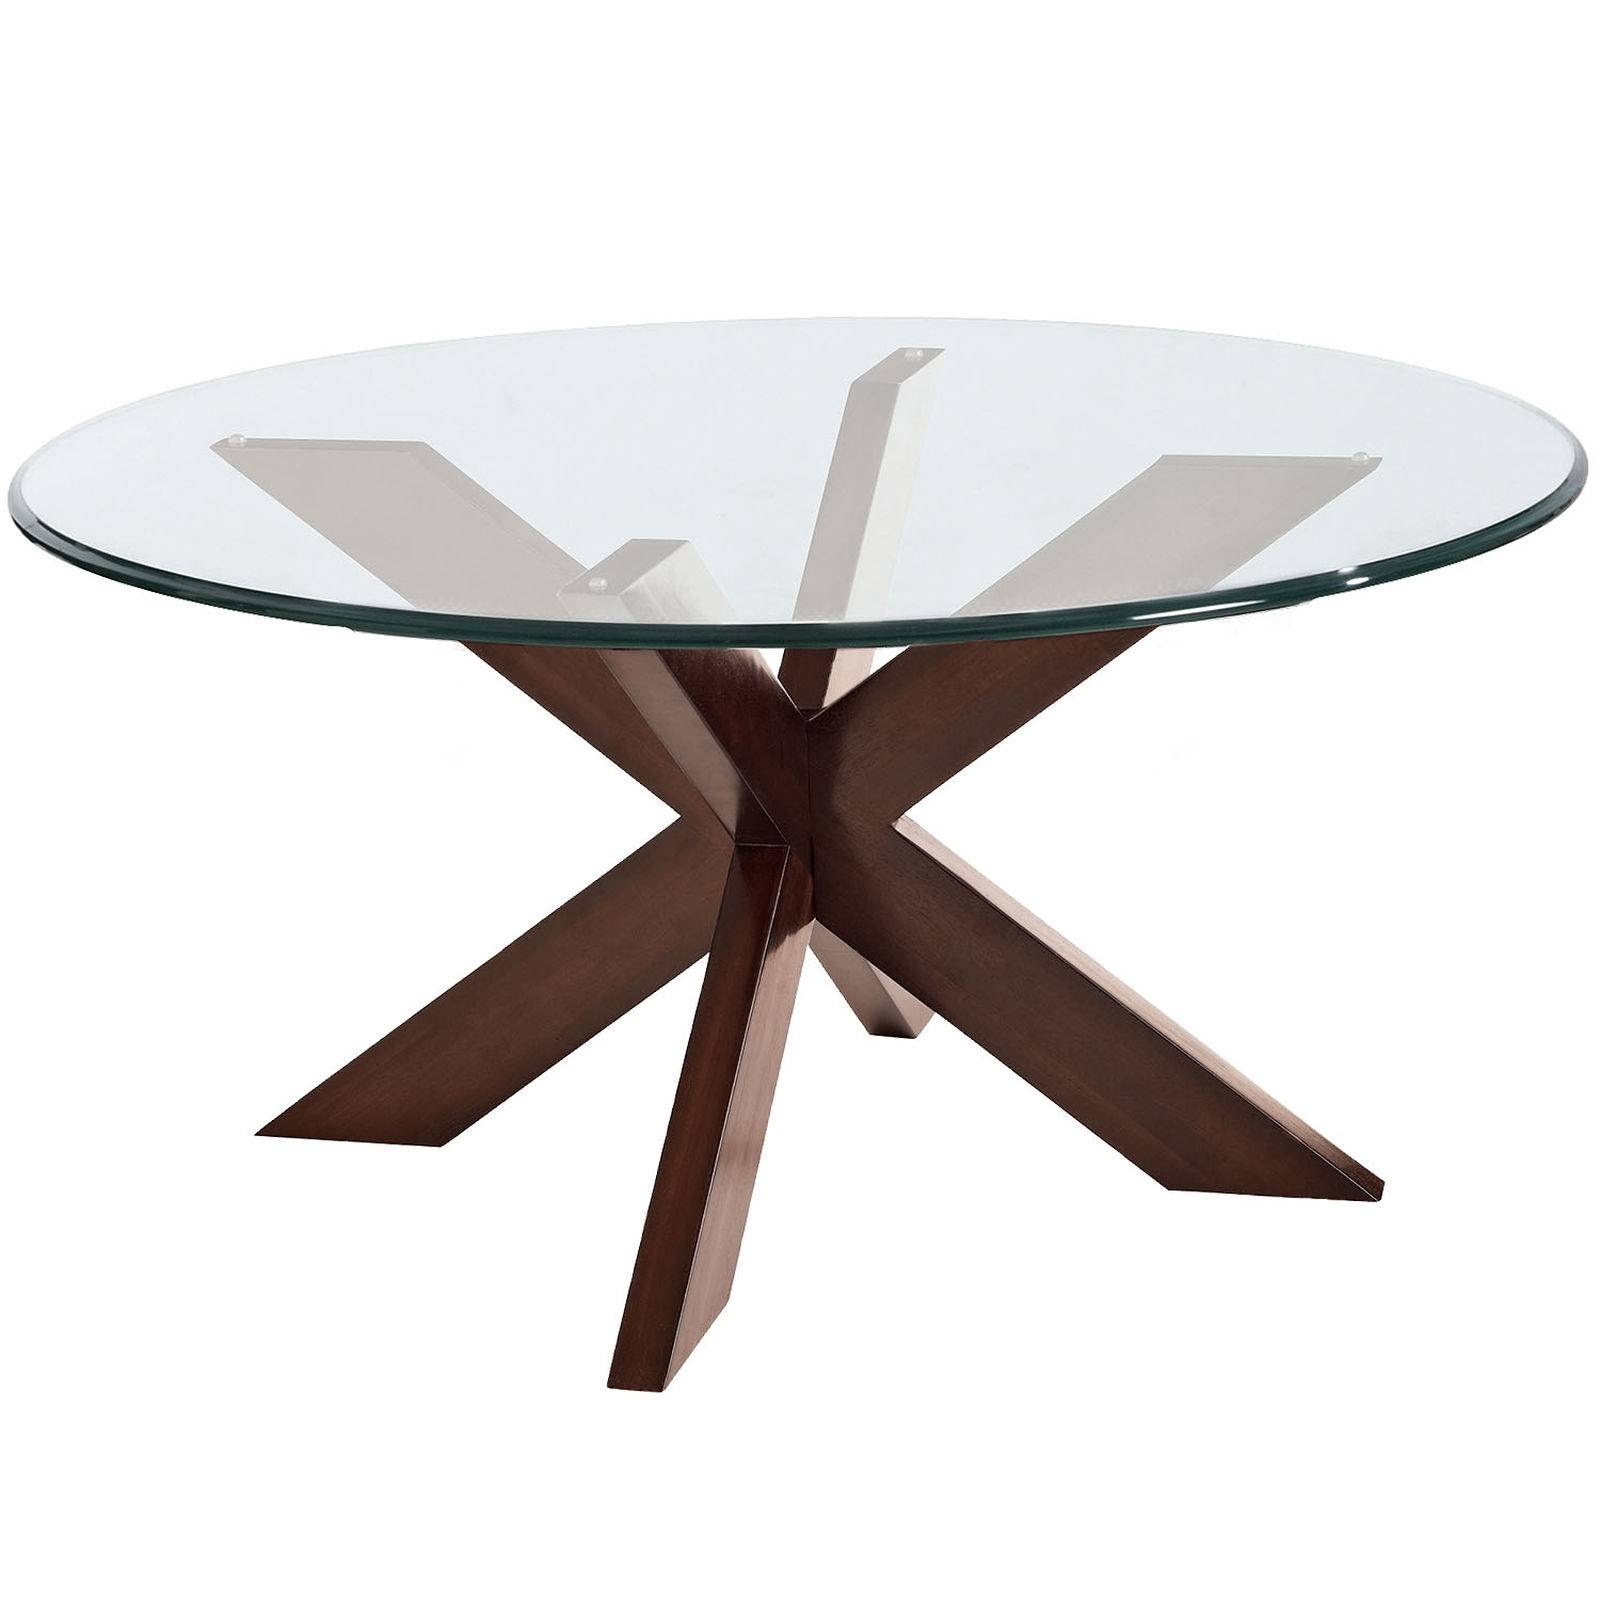 Simon X Coffee Table Base Espresso | Coffee Tables Decoration intended for Swirl Glass Coffee Tables (Image 18 of 30)